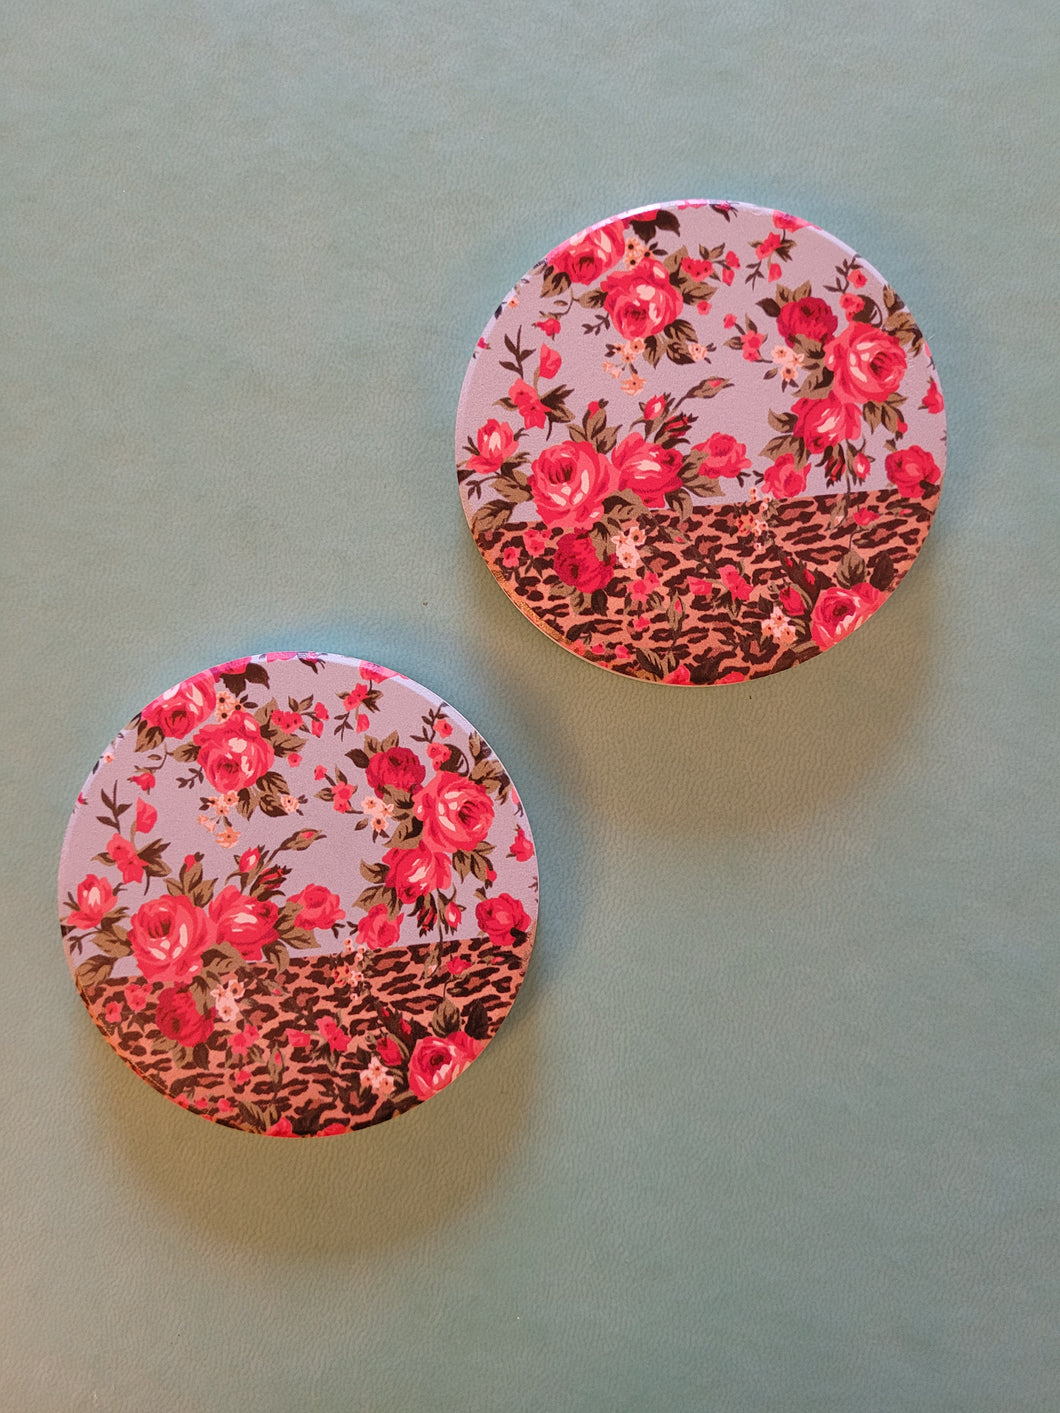 Roses, Leopard & Blue Car Coaster Set